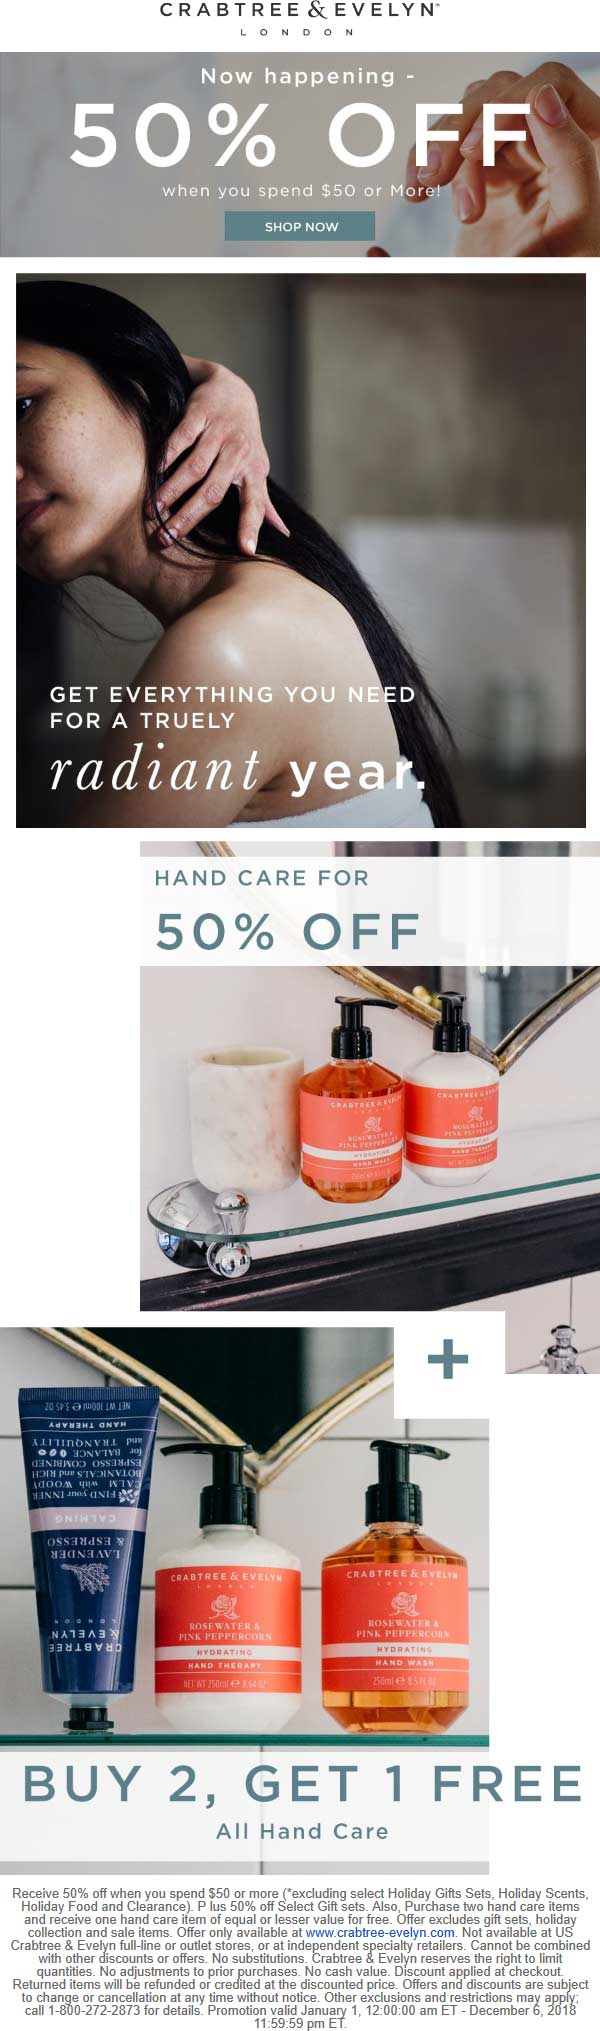 Crabtree & Evelyn Coupon May 2019 50% off $50+ & more online at Crabtree & Evelyn